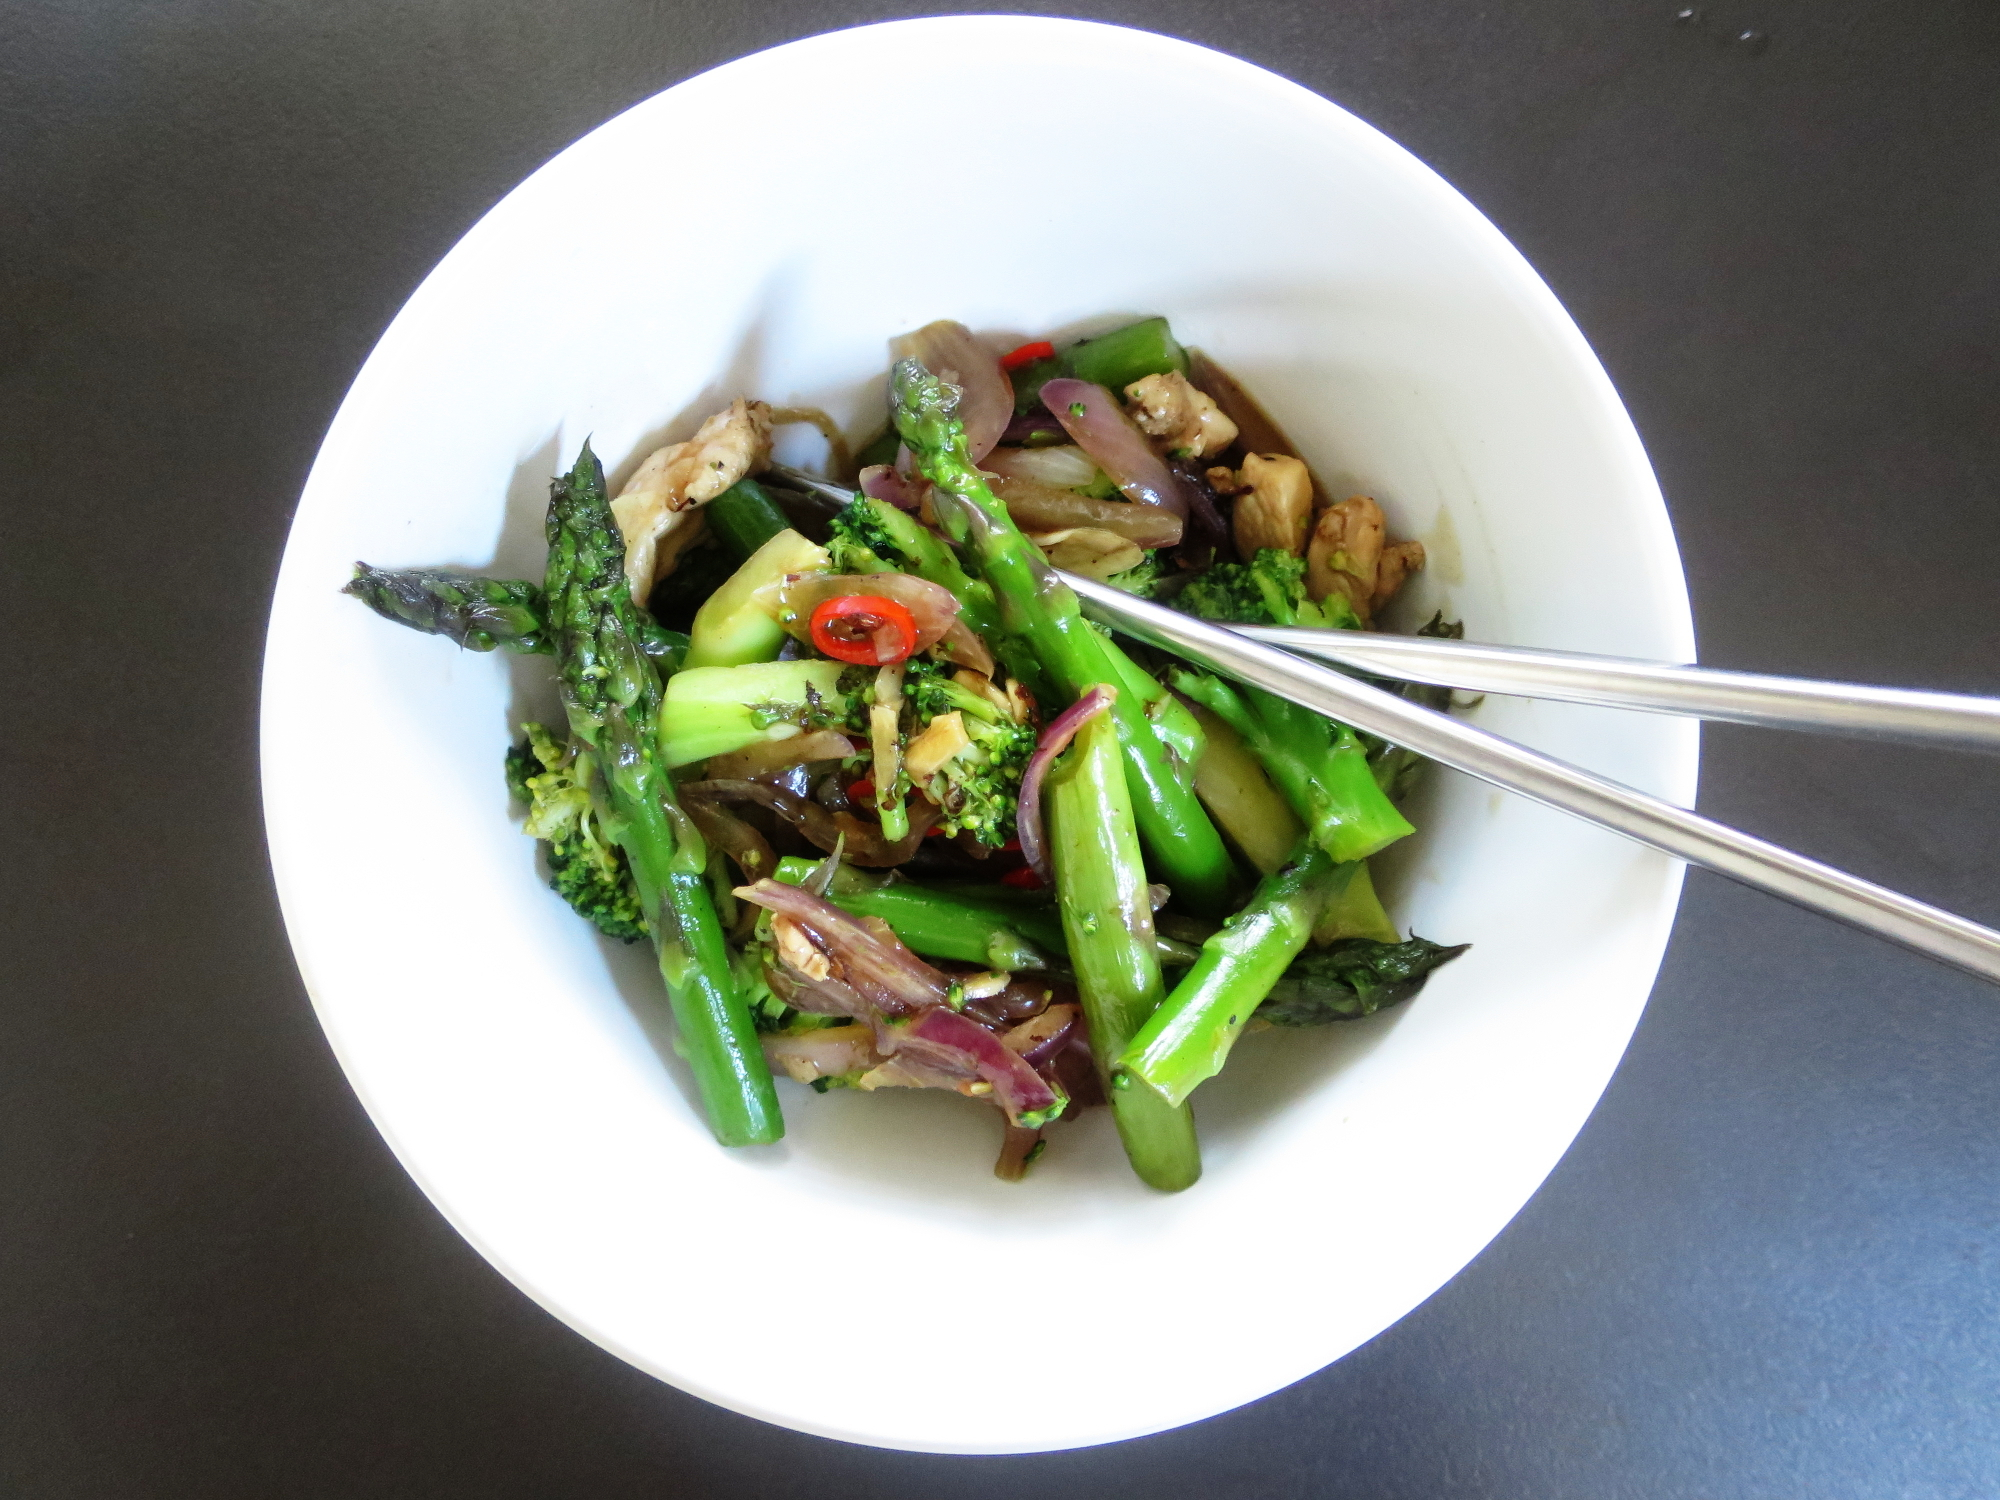 Chicken, Broccoli and Asparagus Stir Fry